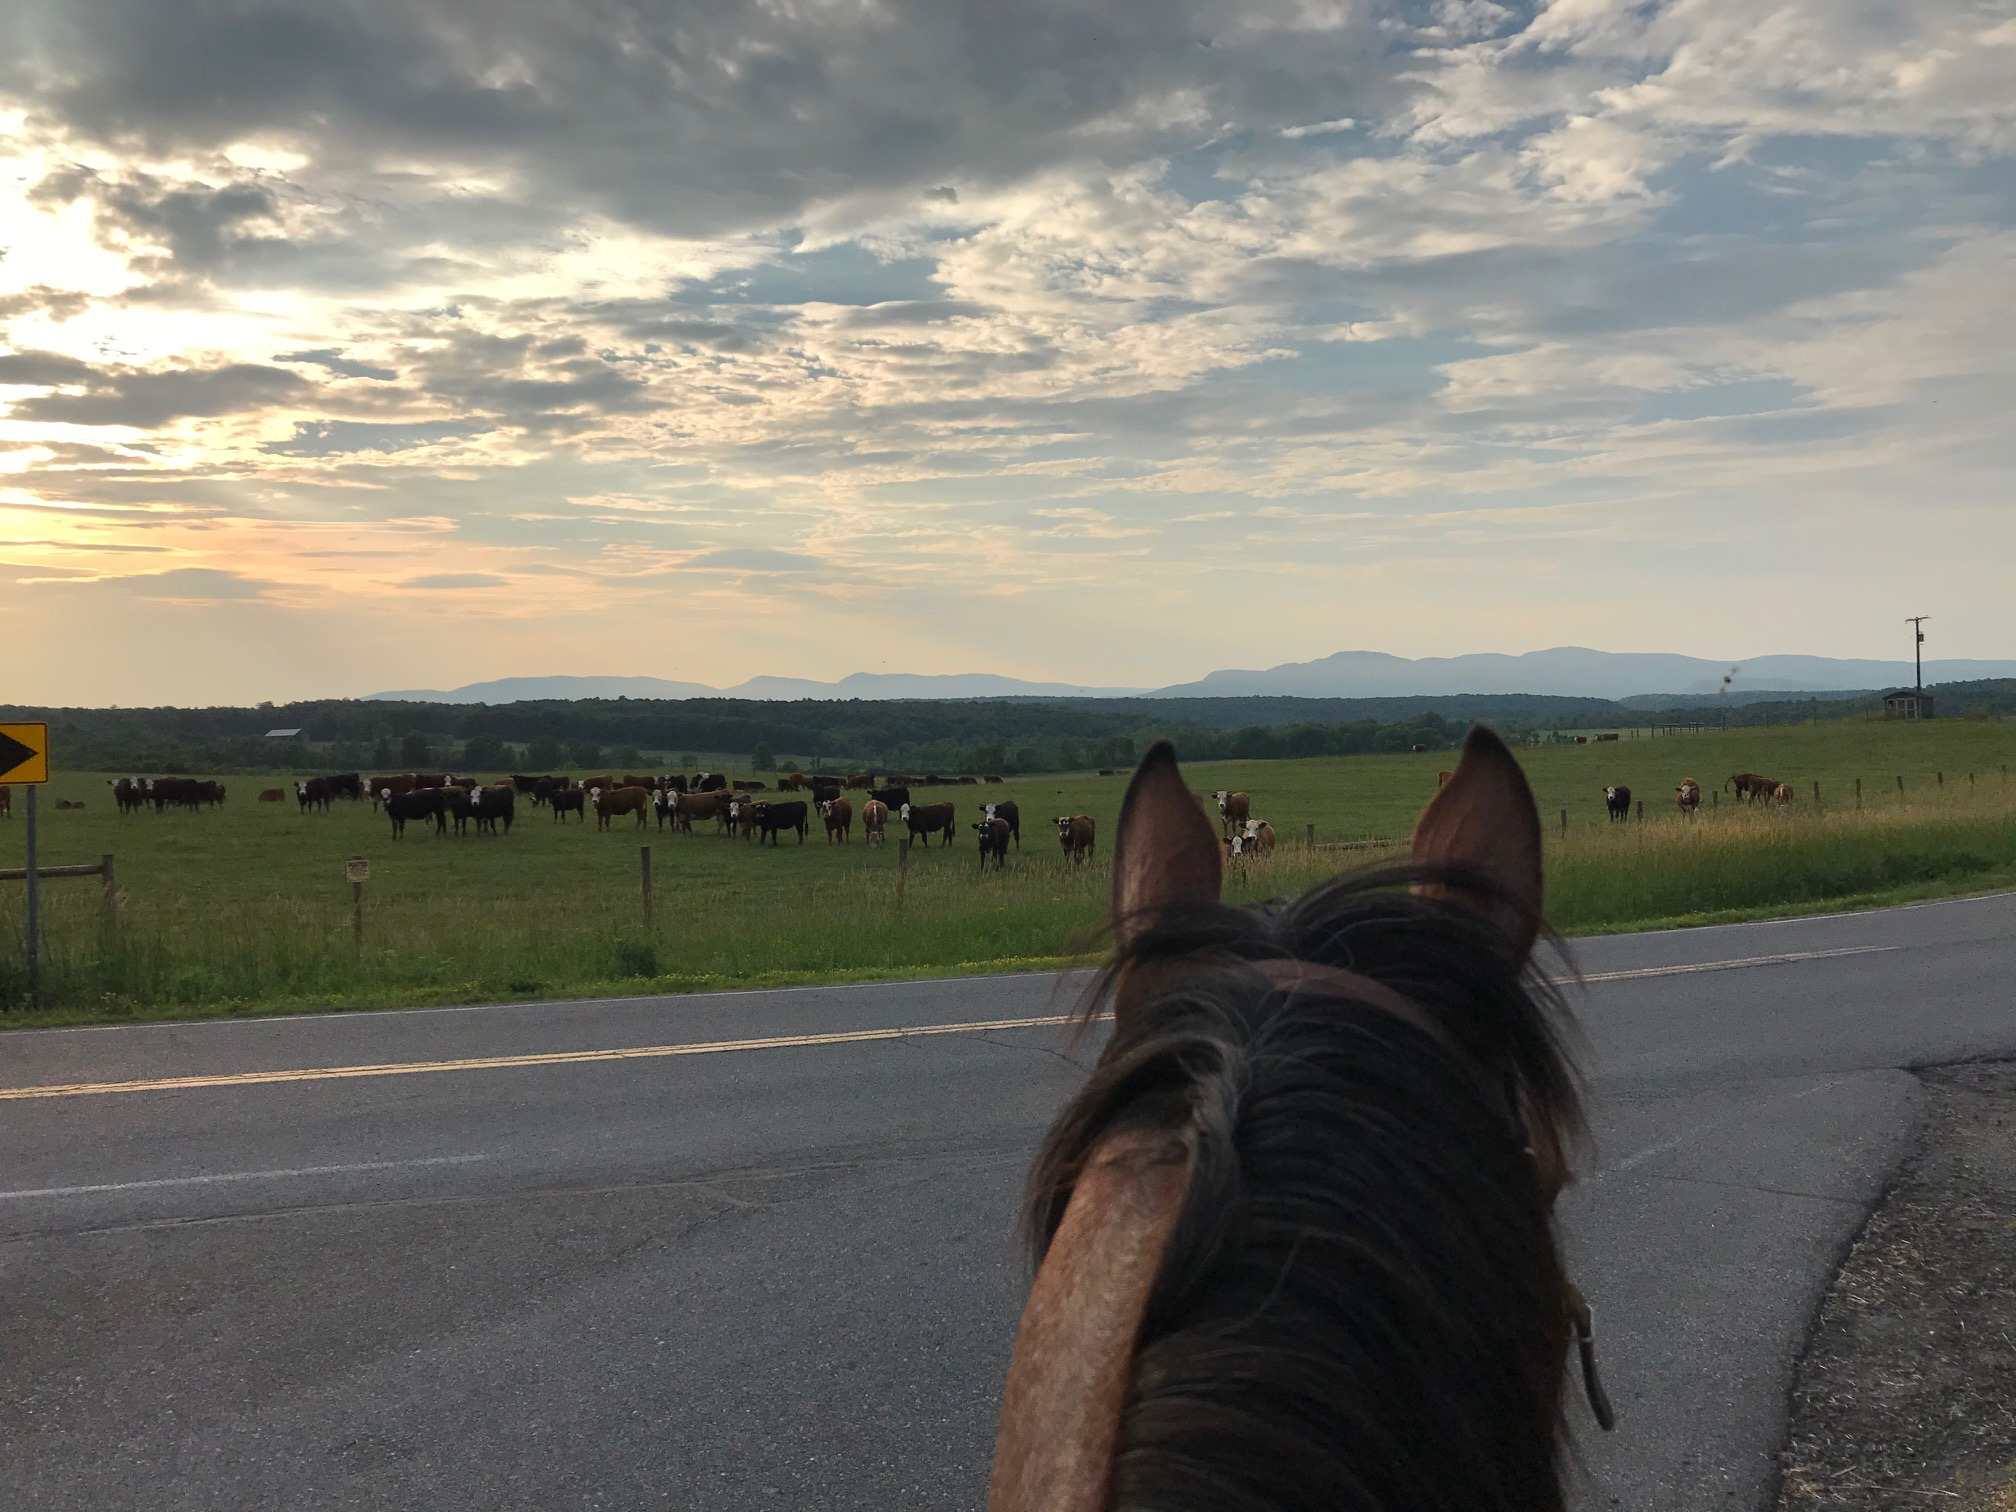 horses helping with moving cattle to different pastures